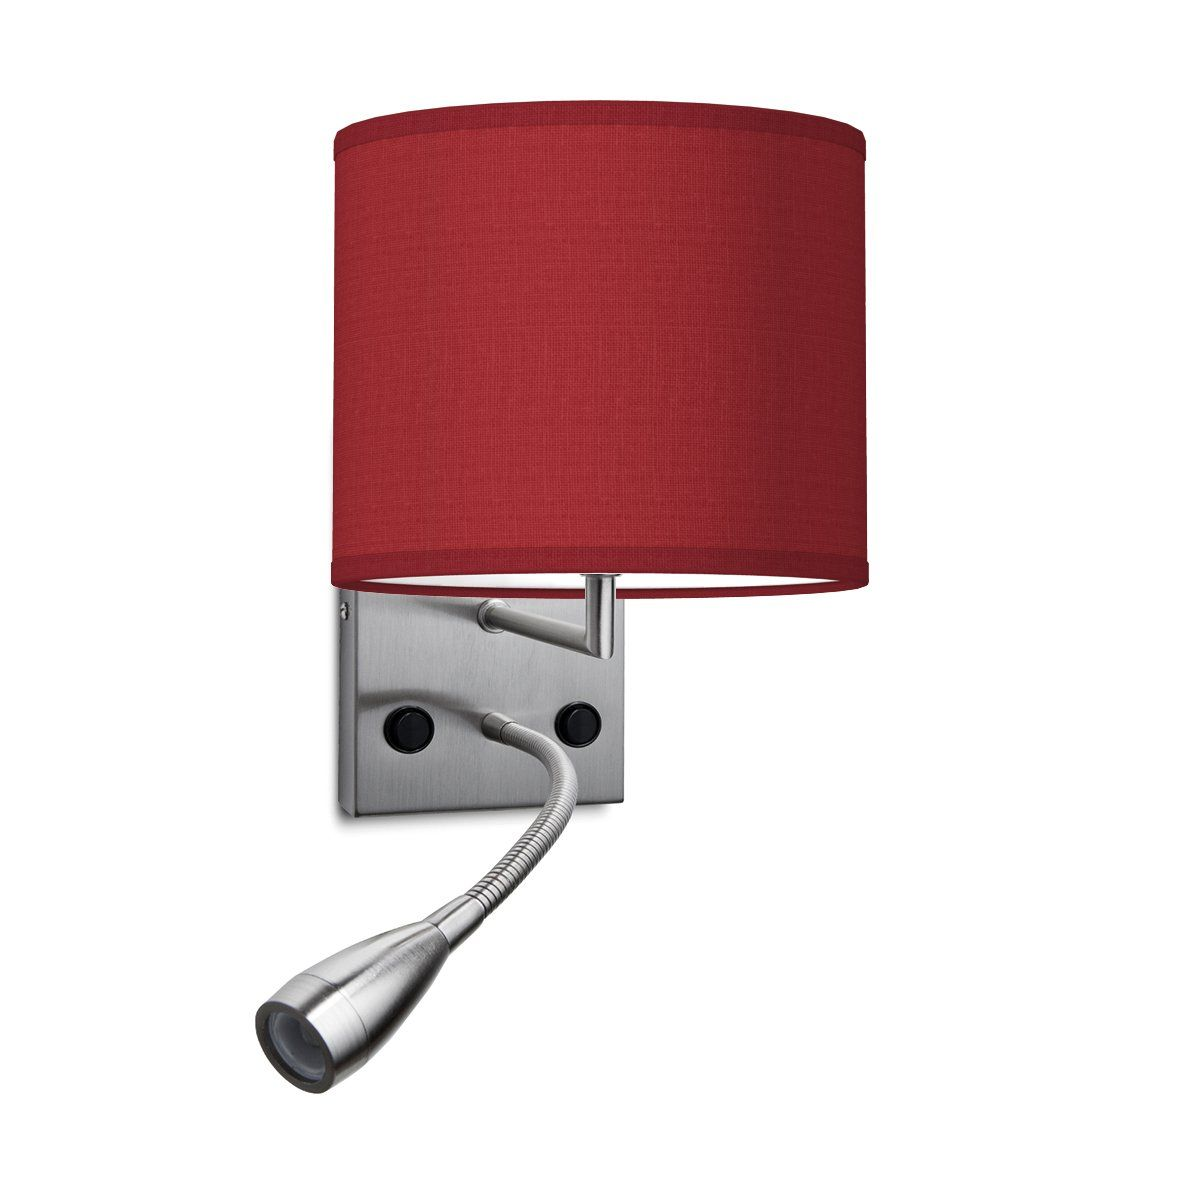 HOME SWEET HOME wandlamp read bling Ø 20 cm - Pompeian red